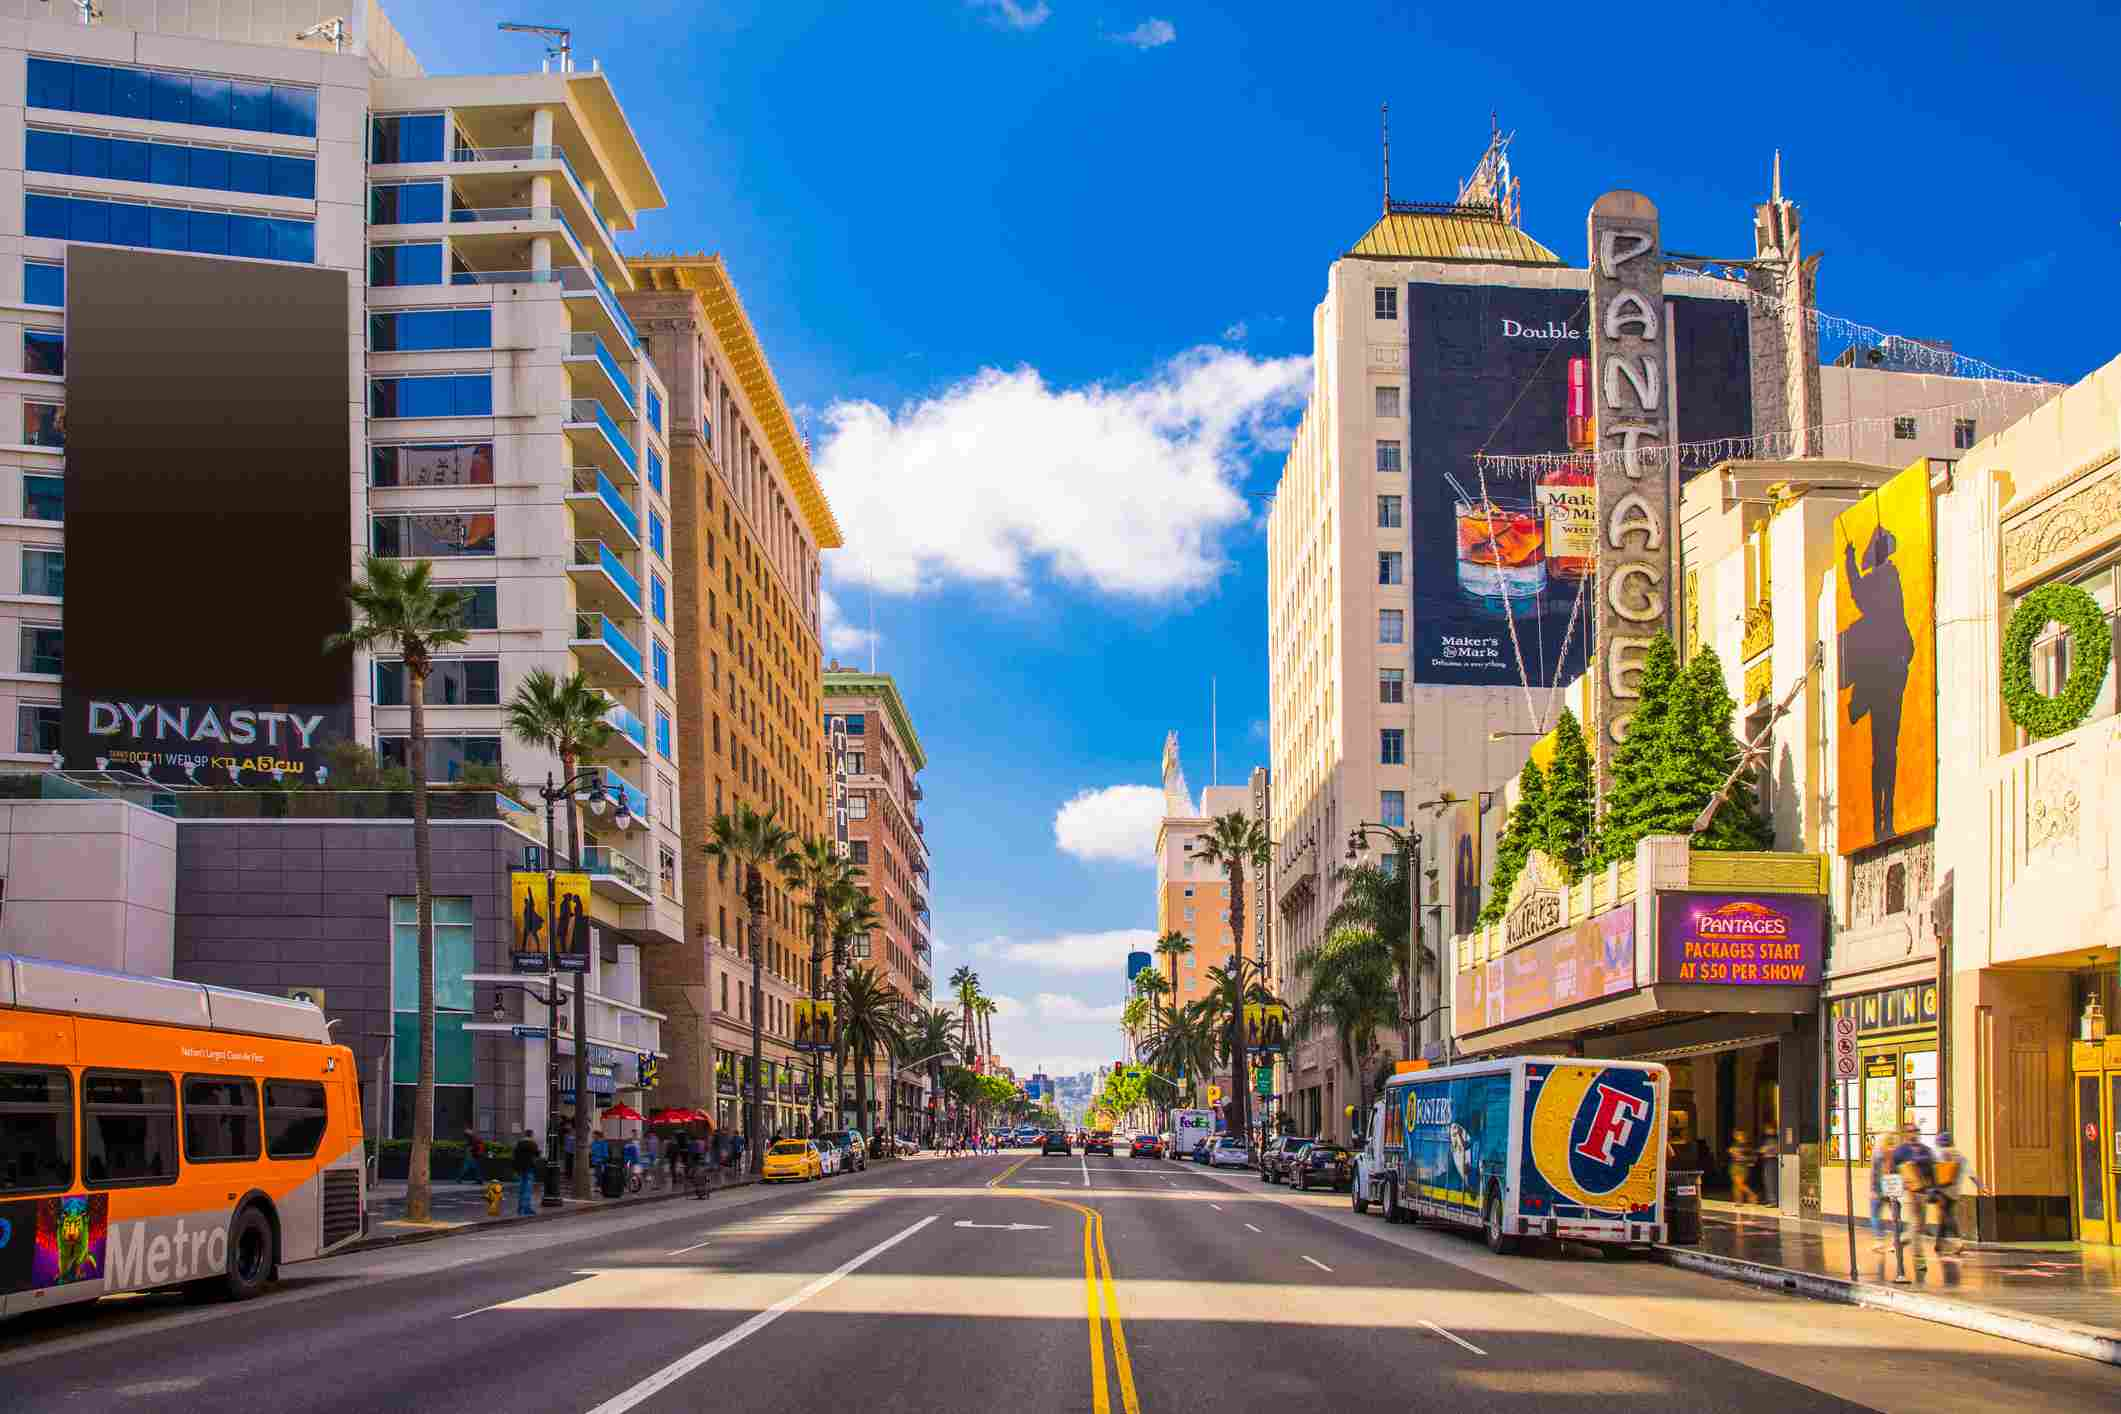 Sunset Boulevard - Hollywood in Los Angeles